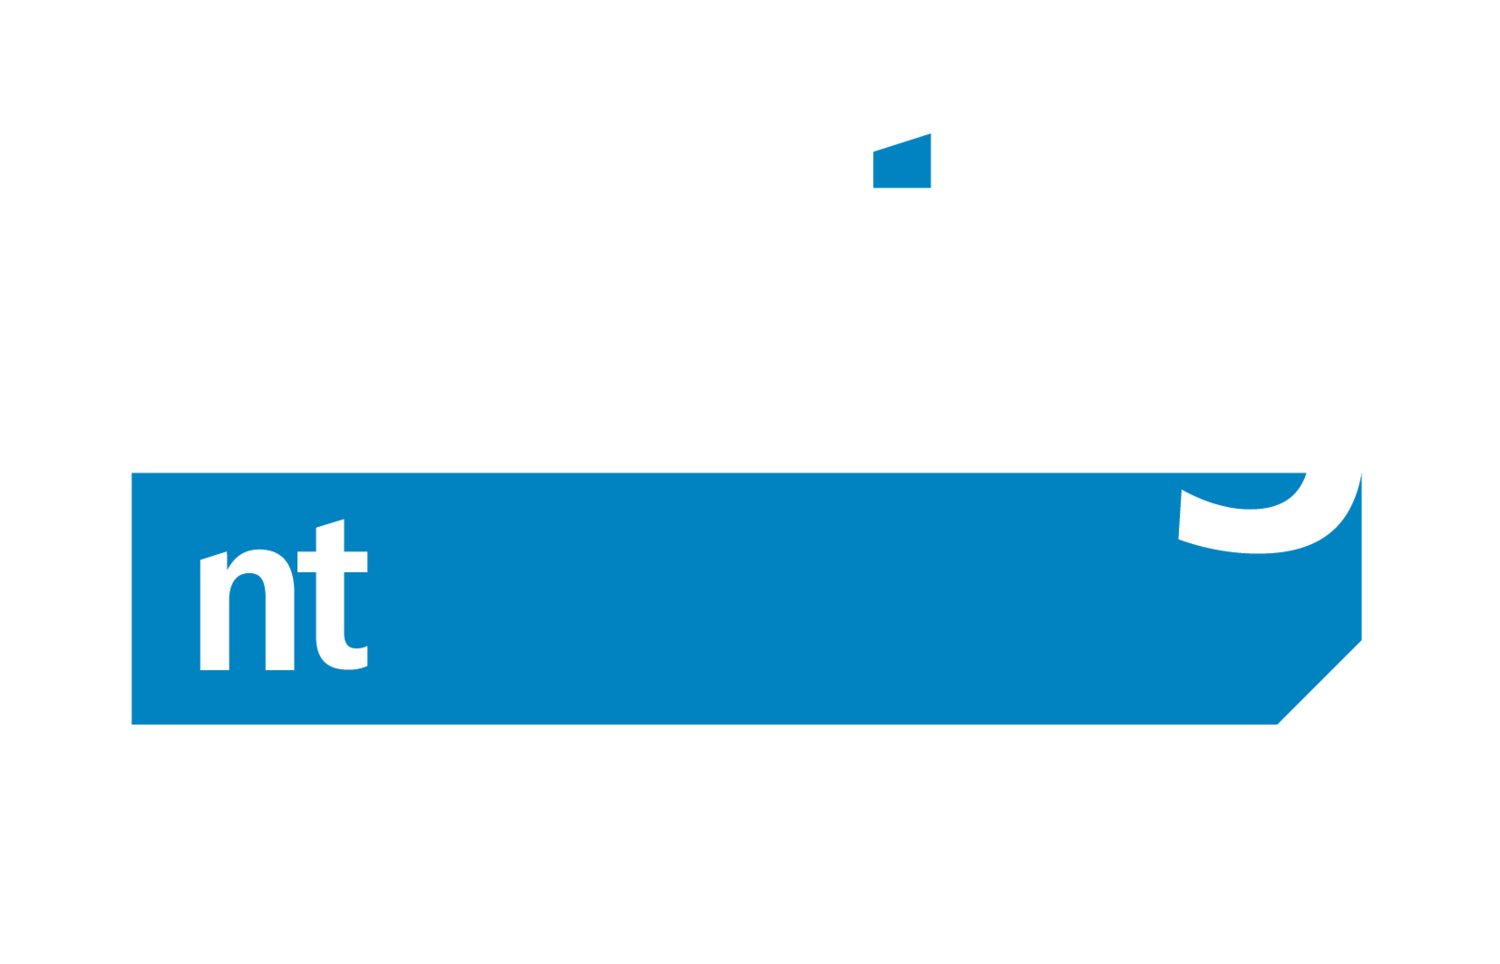 Sterling NT | Complete Maintenance Services